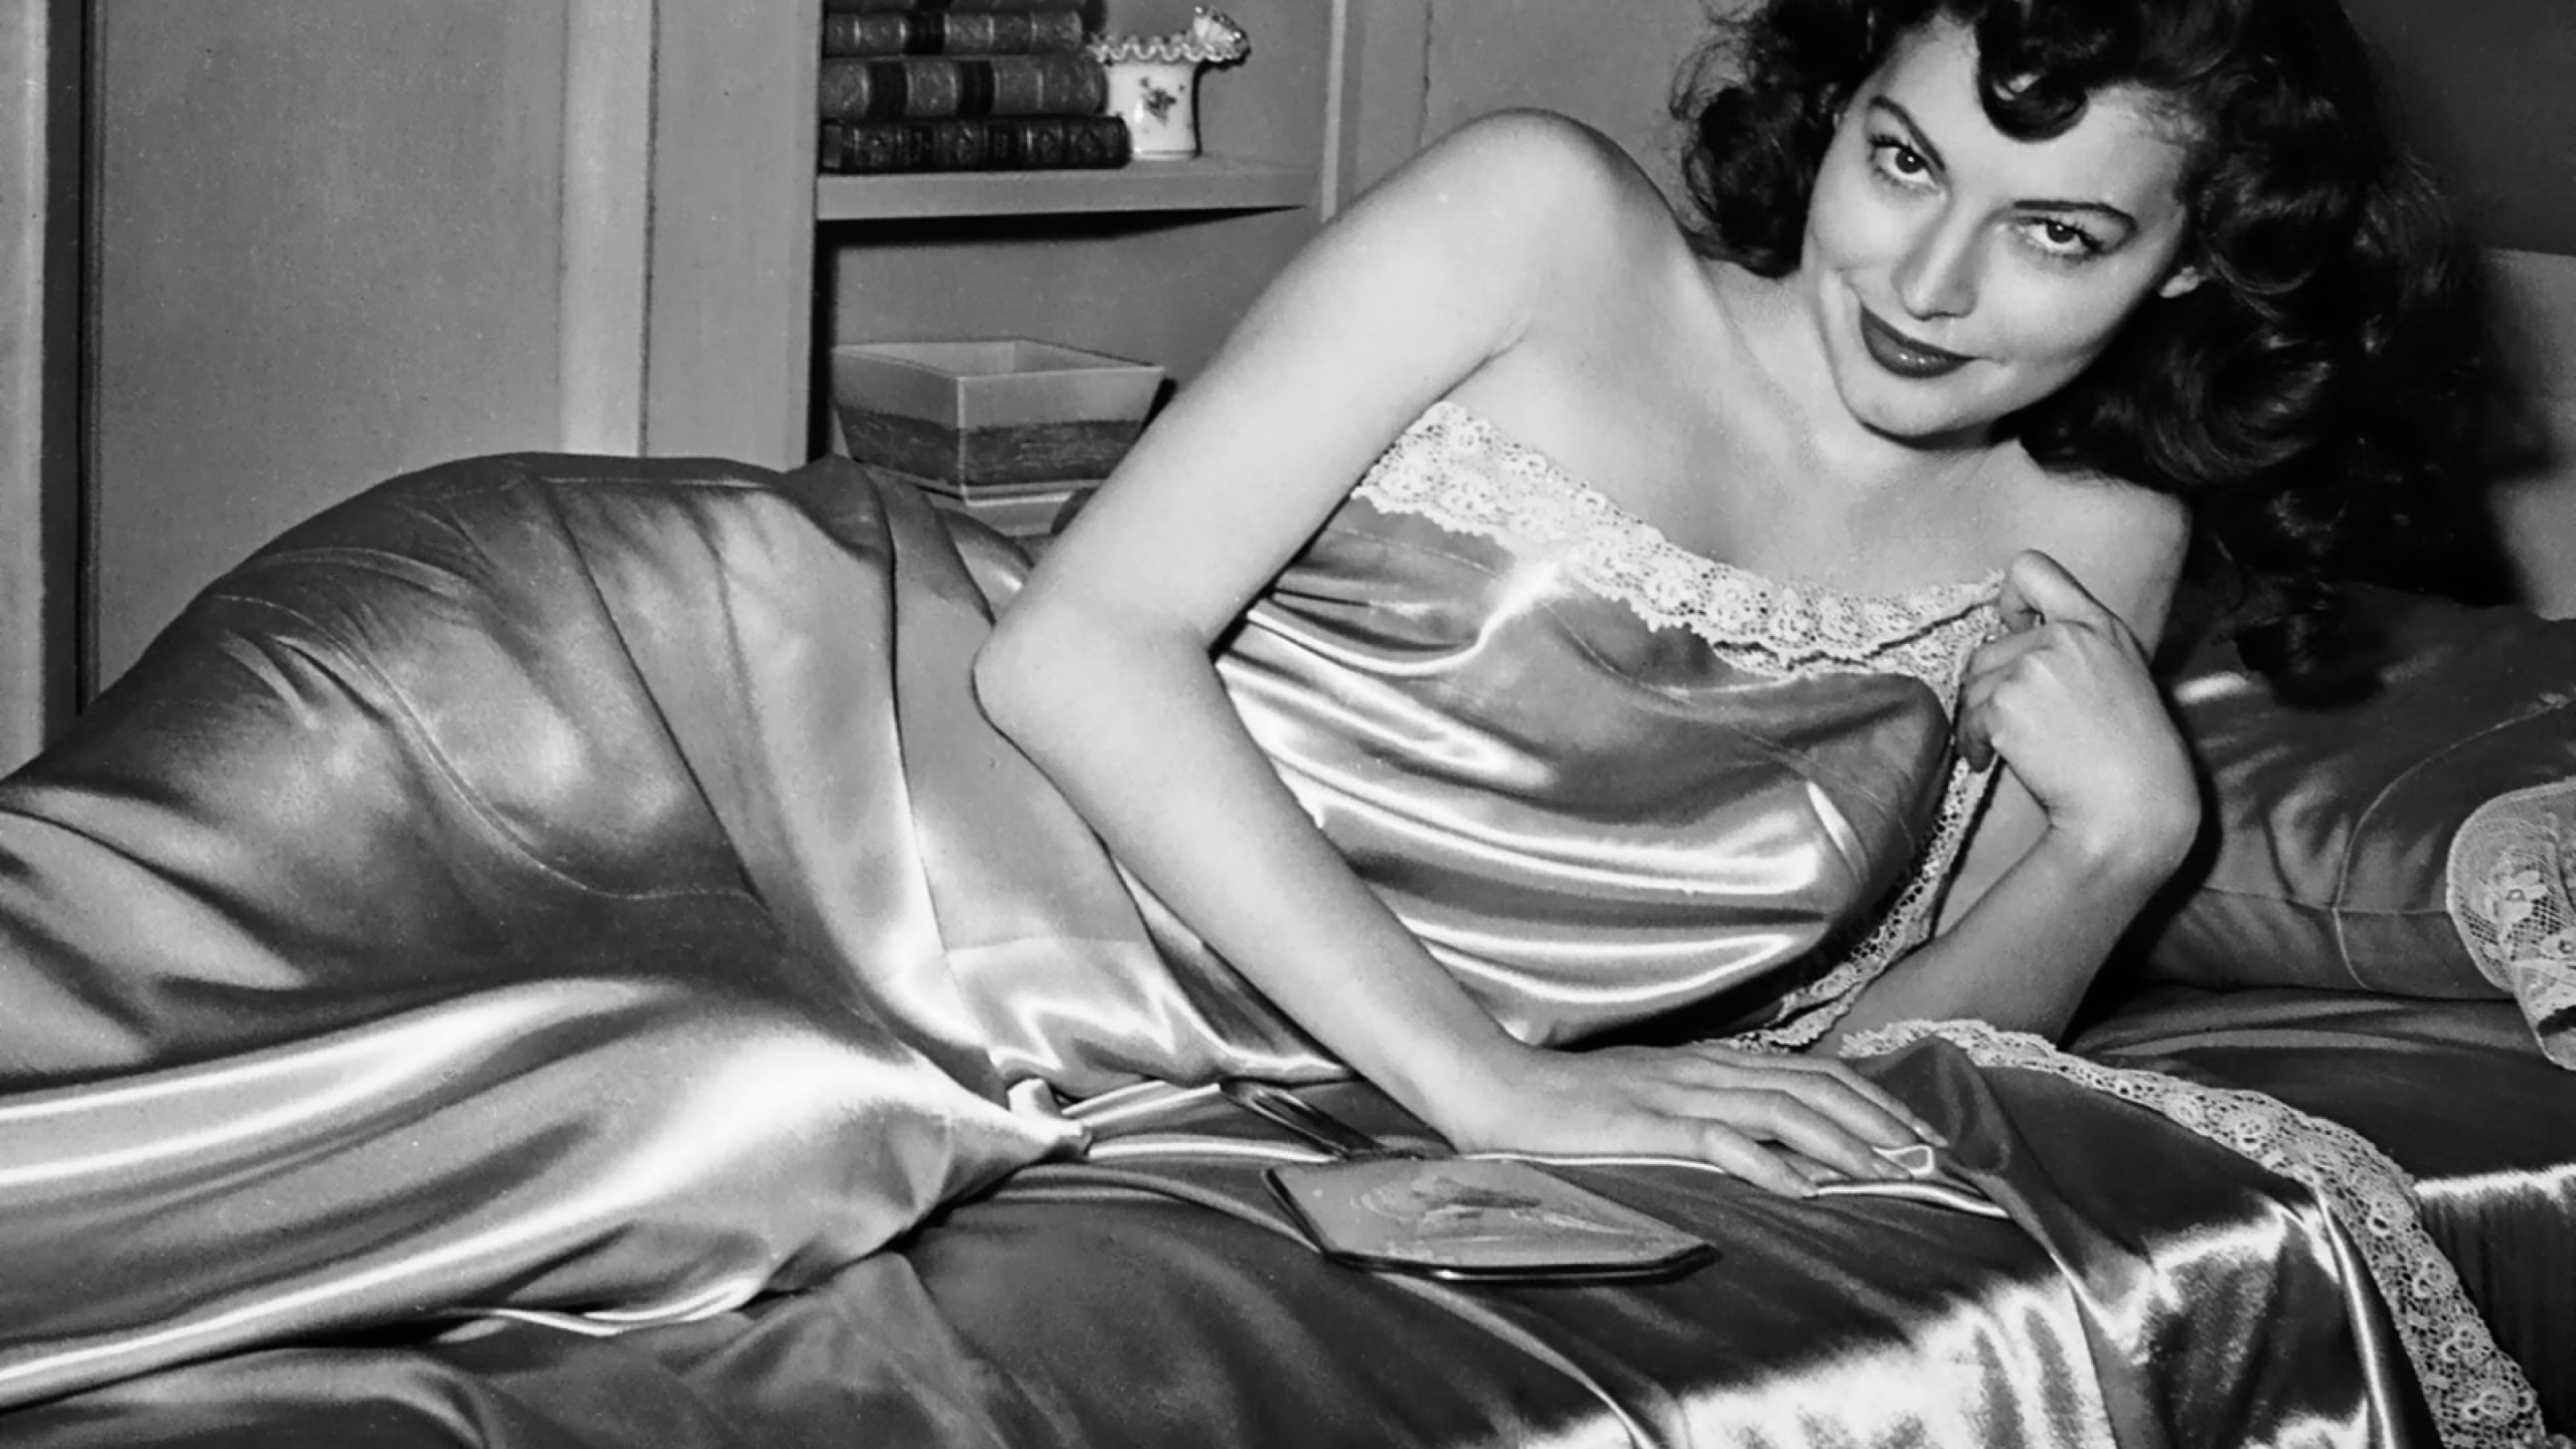 ava_gardner14_the_killers_barefoot_contessa_ultra_3840x2160_hd-wallpaper-1332003